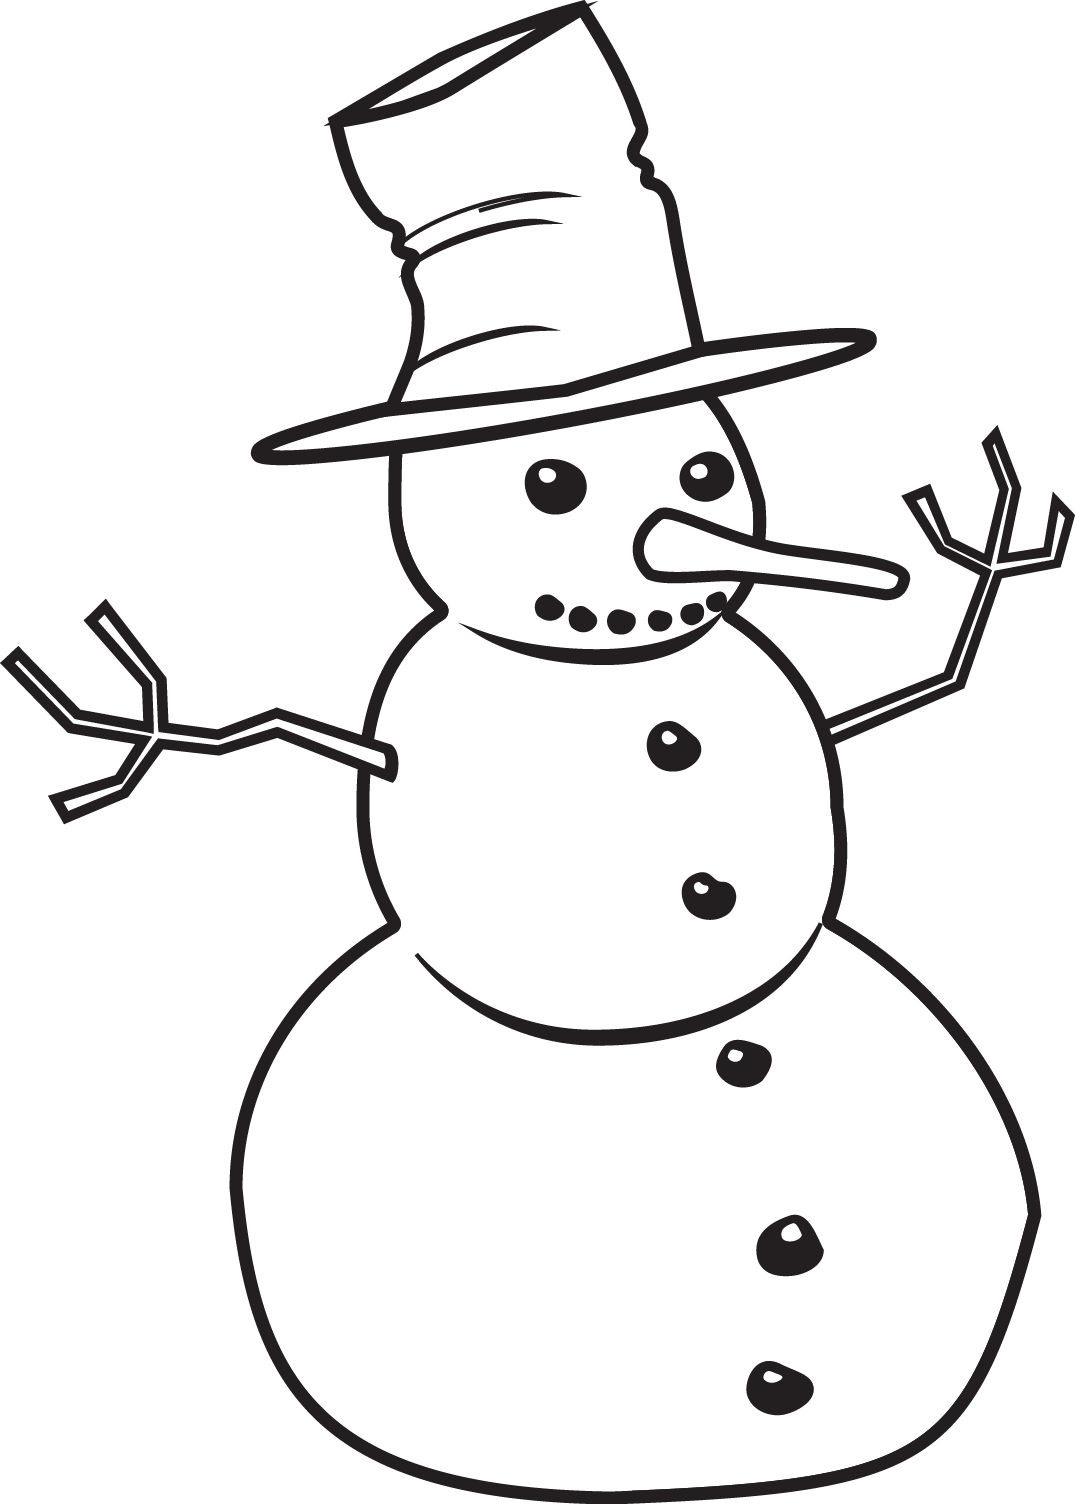 Stay Busy This Winter with Cute Snowman Crafts for Kids ...